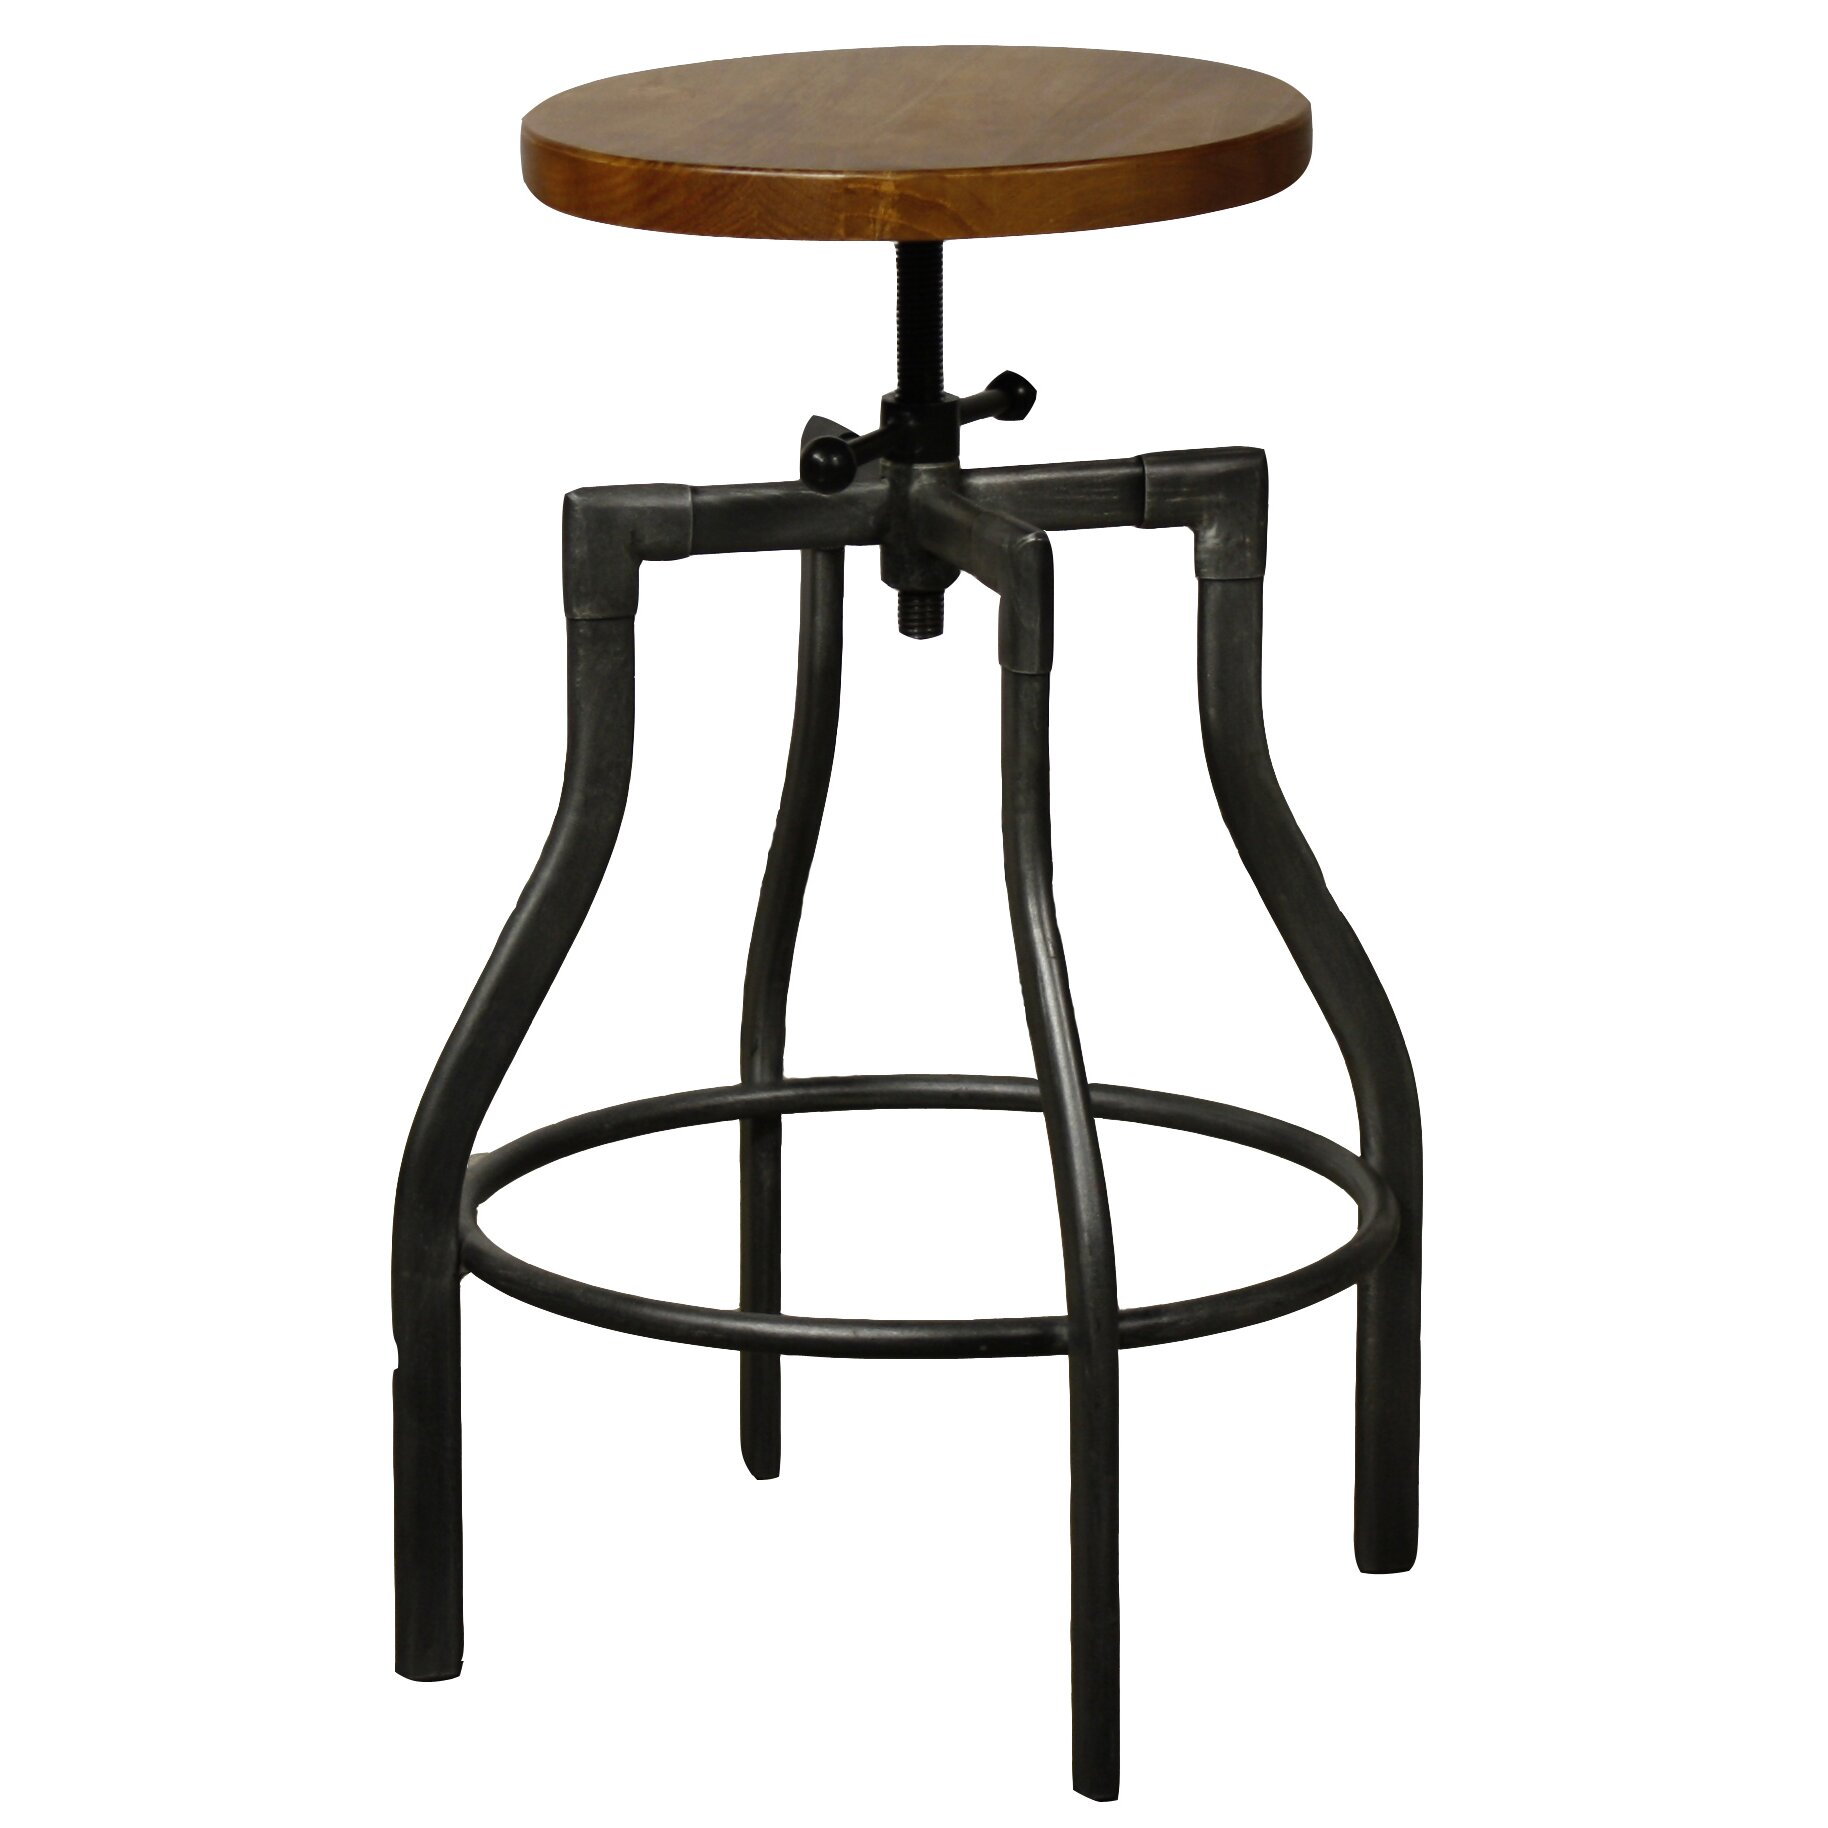 New Pacific Direct Industrial Adjustable Height Swivel Bar  : Industrial City Adjustable Height Bar Stool 958616 from www.wayfair.com size 1828 x 1828 jpeg 178kB